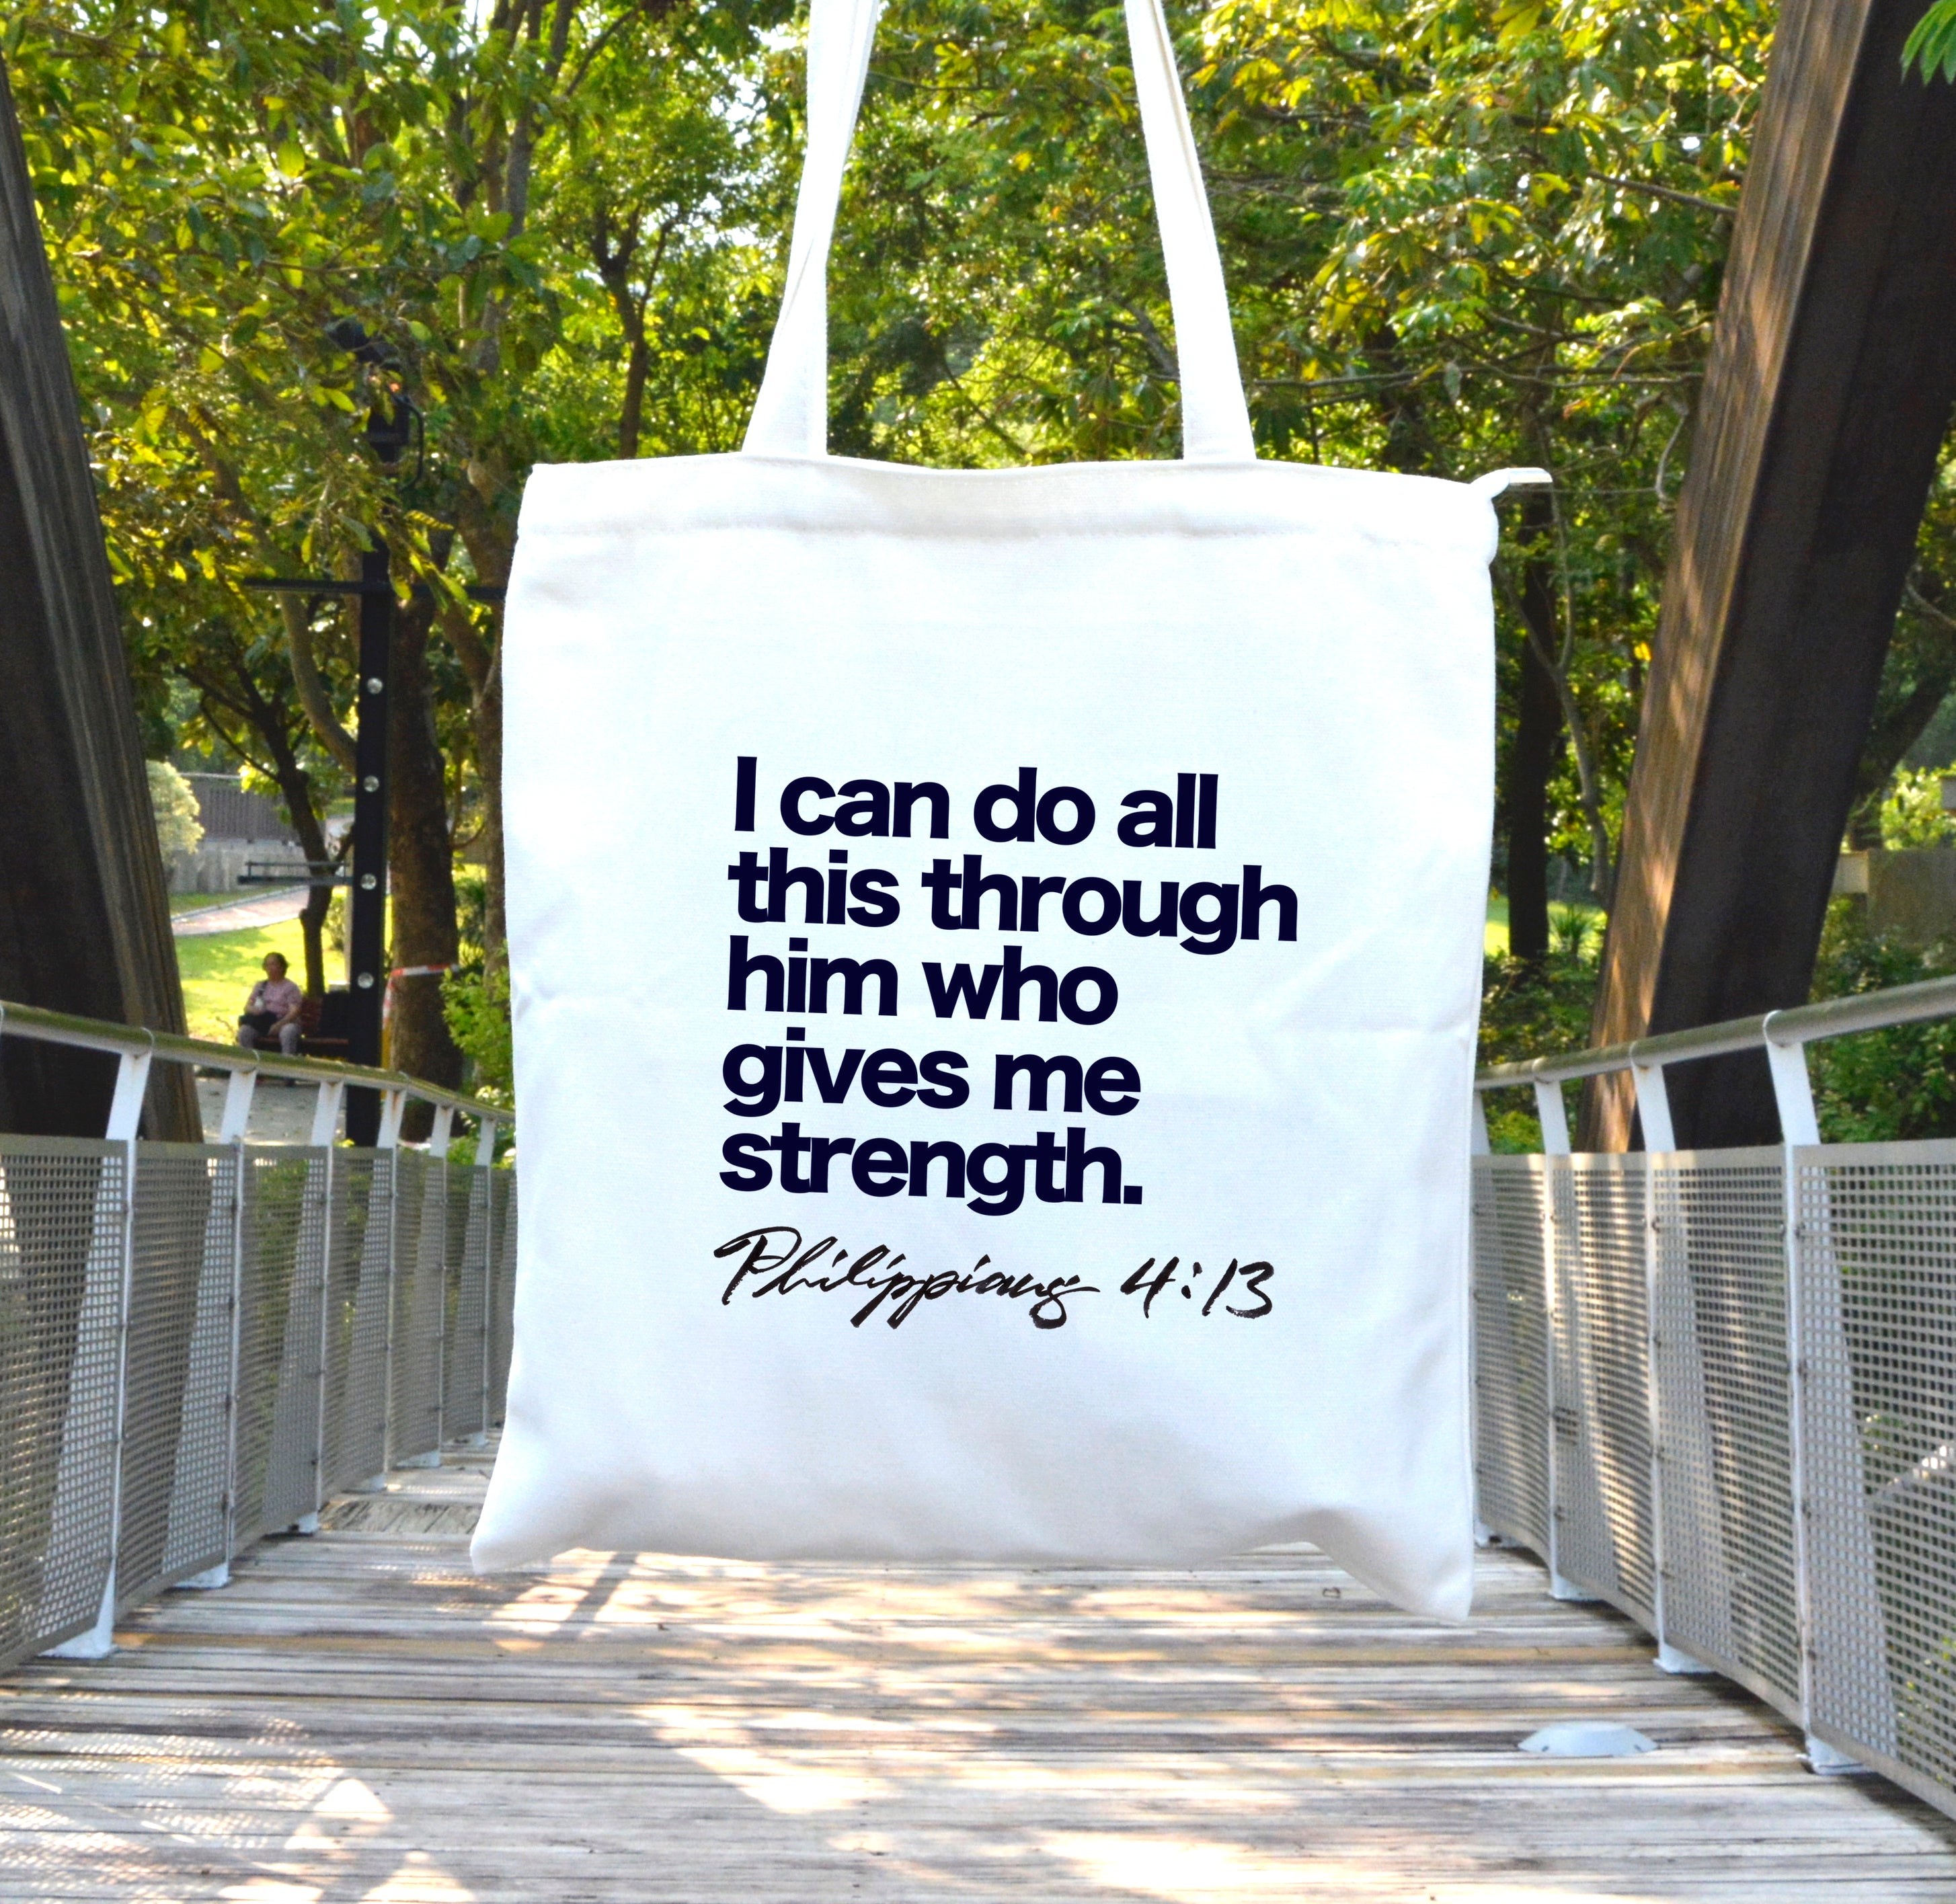 Him who gives me strength // Philippians 4:13 - Lloria's